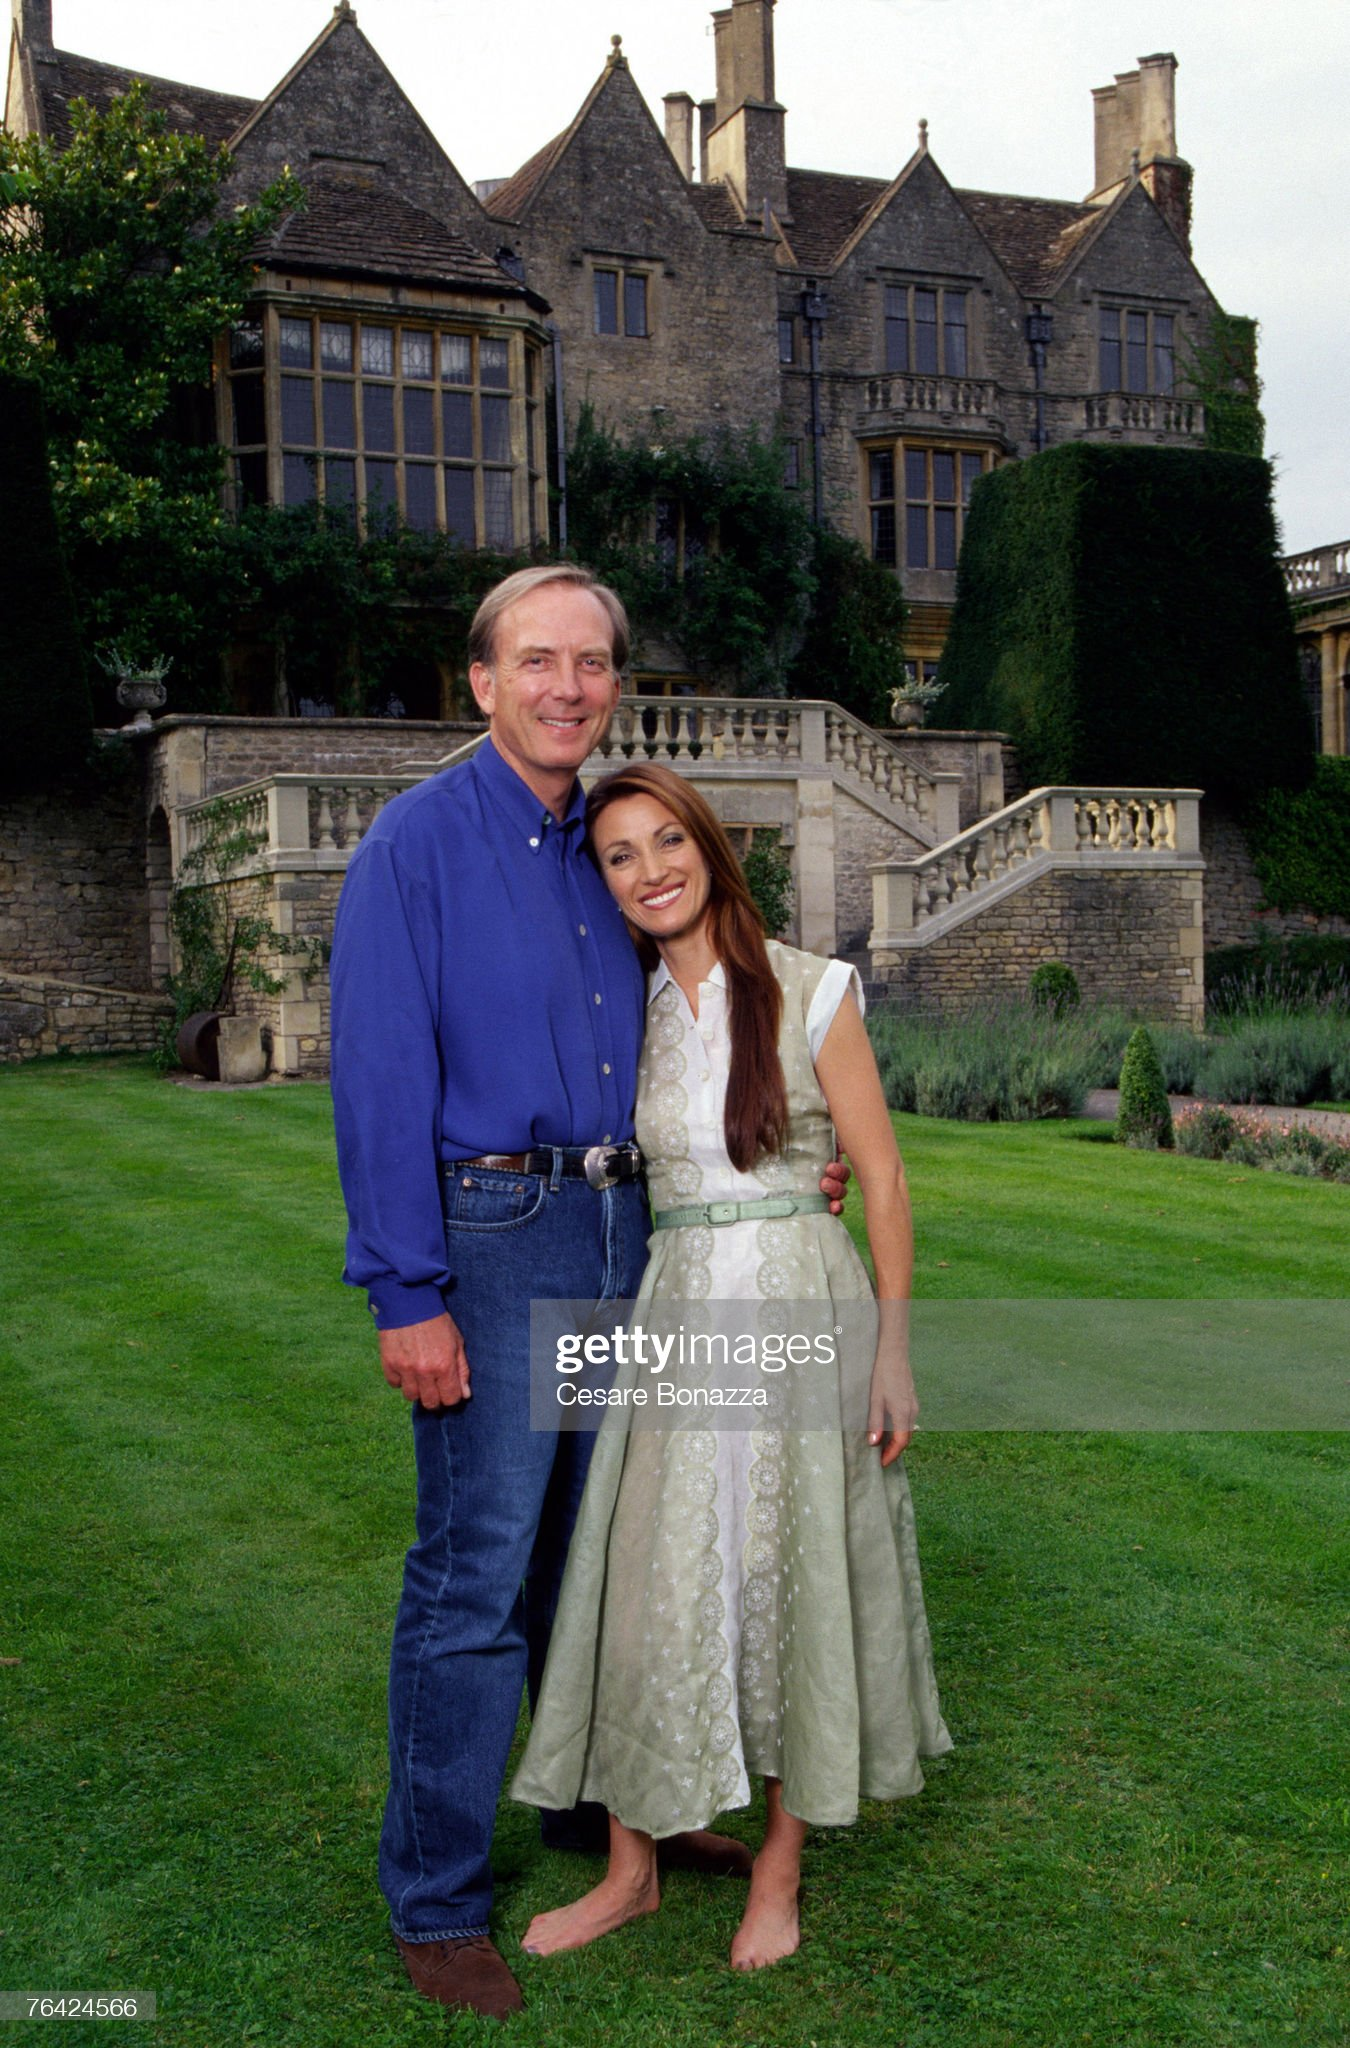 https://media.gettyimages.com/photos/james-keach-and-jane-seymour-jane-seymour-photo-shoot-in-bath-england-picture-id76424566?s=2048x2048